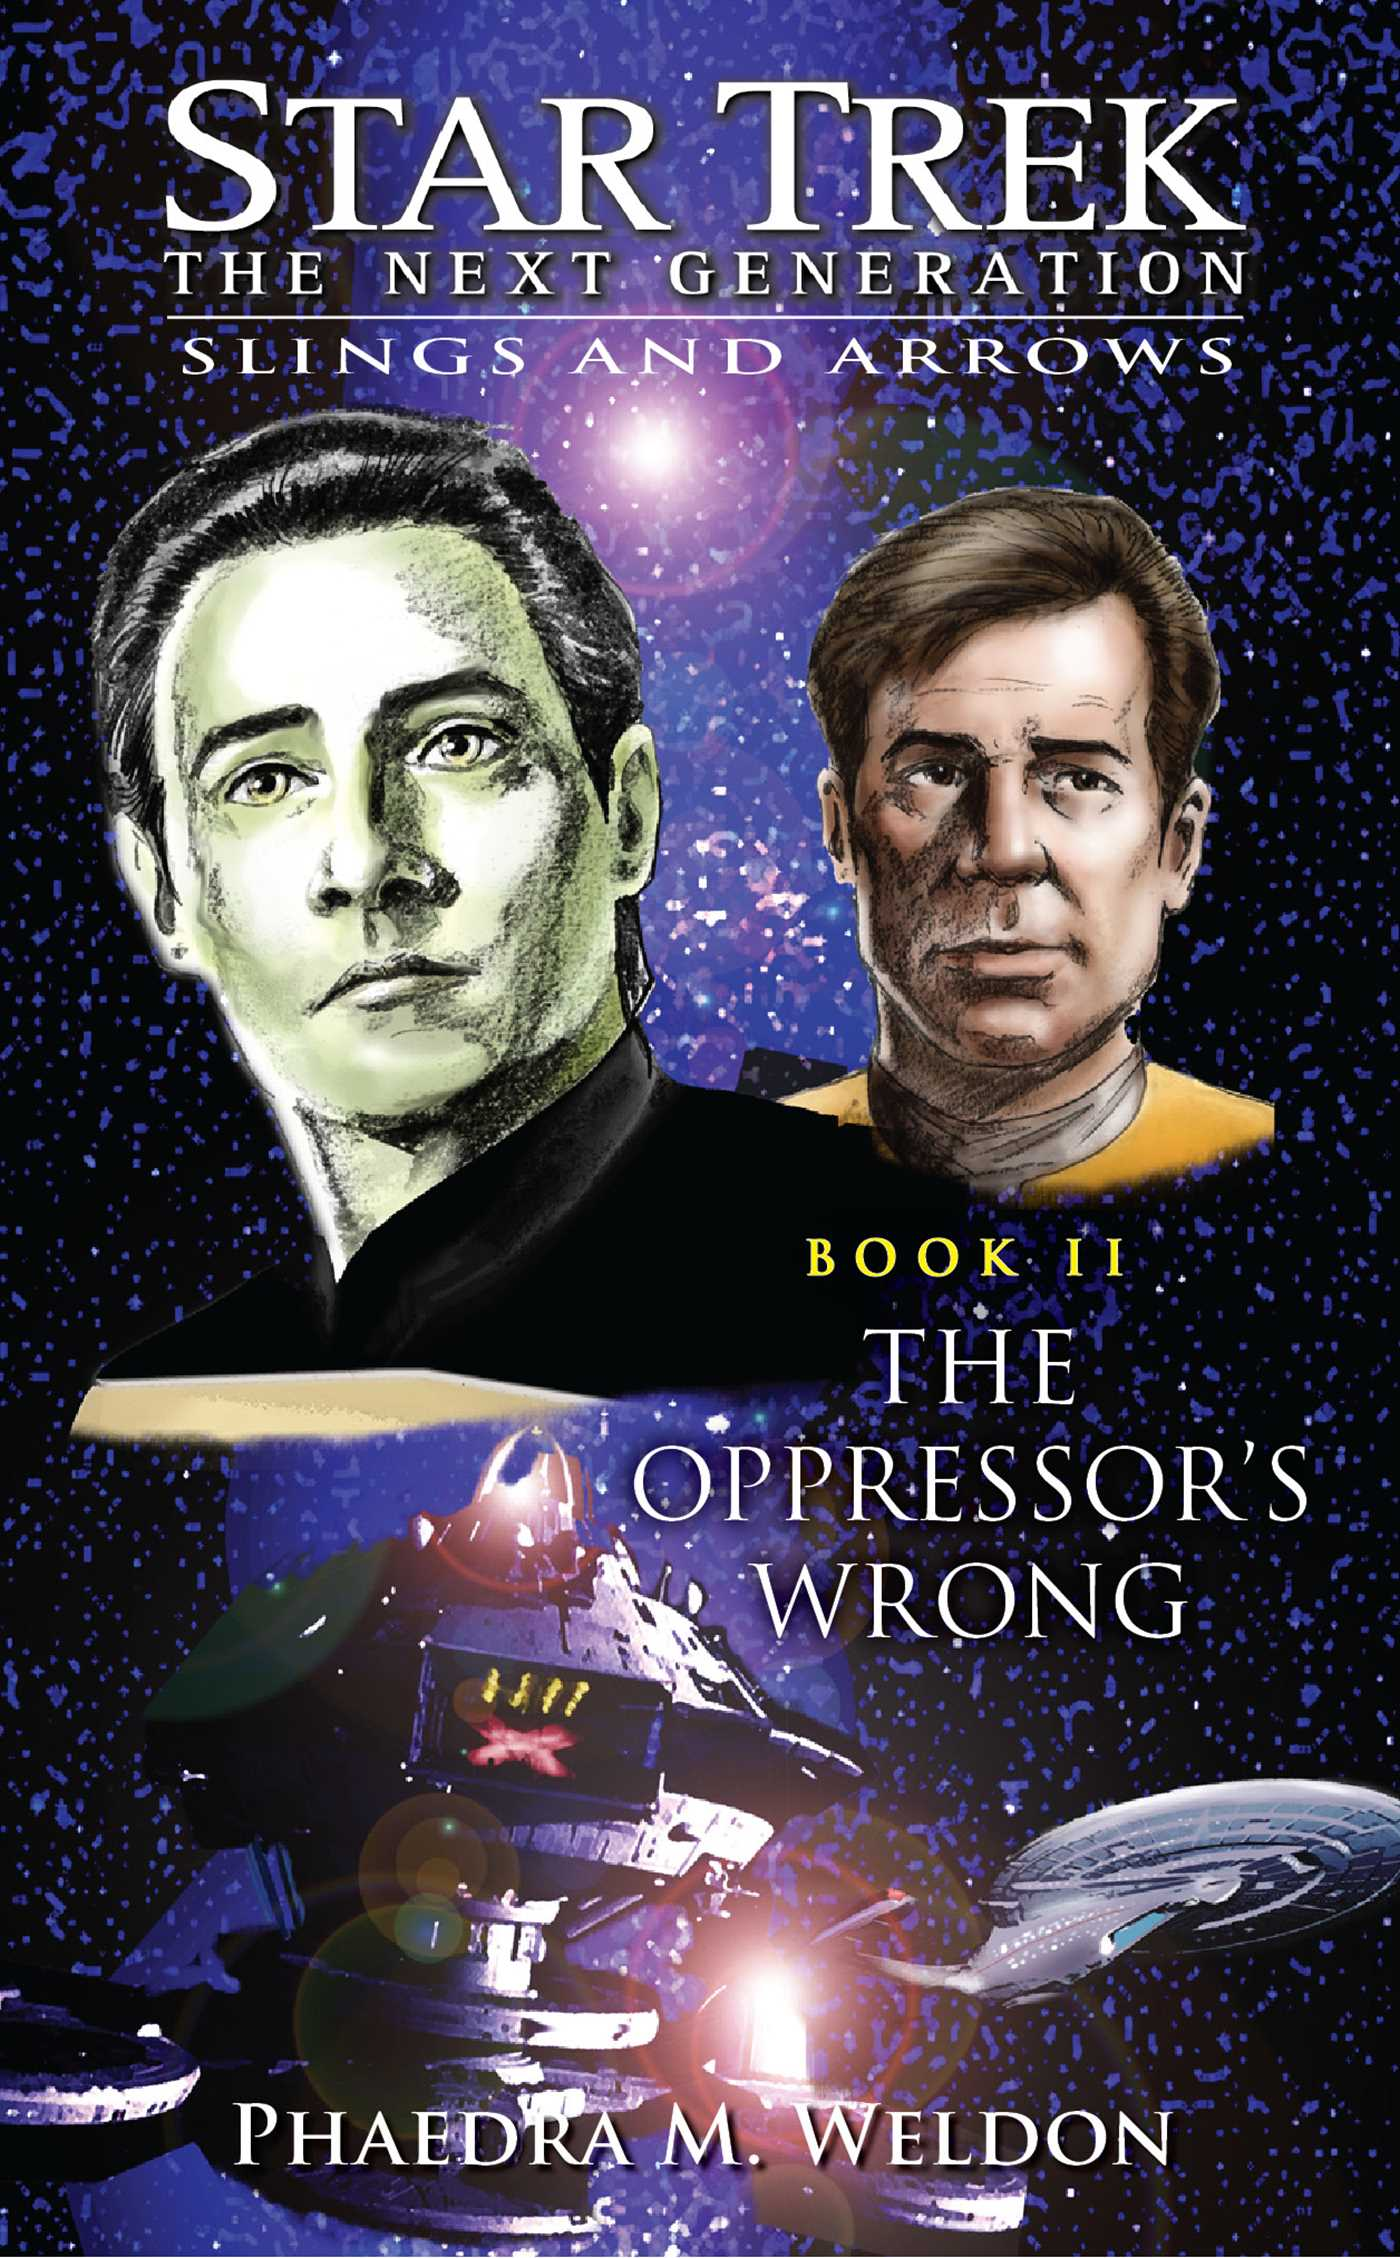 Star-trek-the-next-generation-slings-and-arrrows-2-the-oppressors-wrong-9781416550136_hr